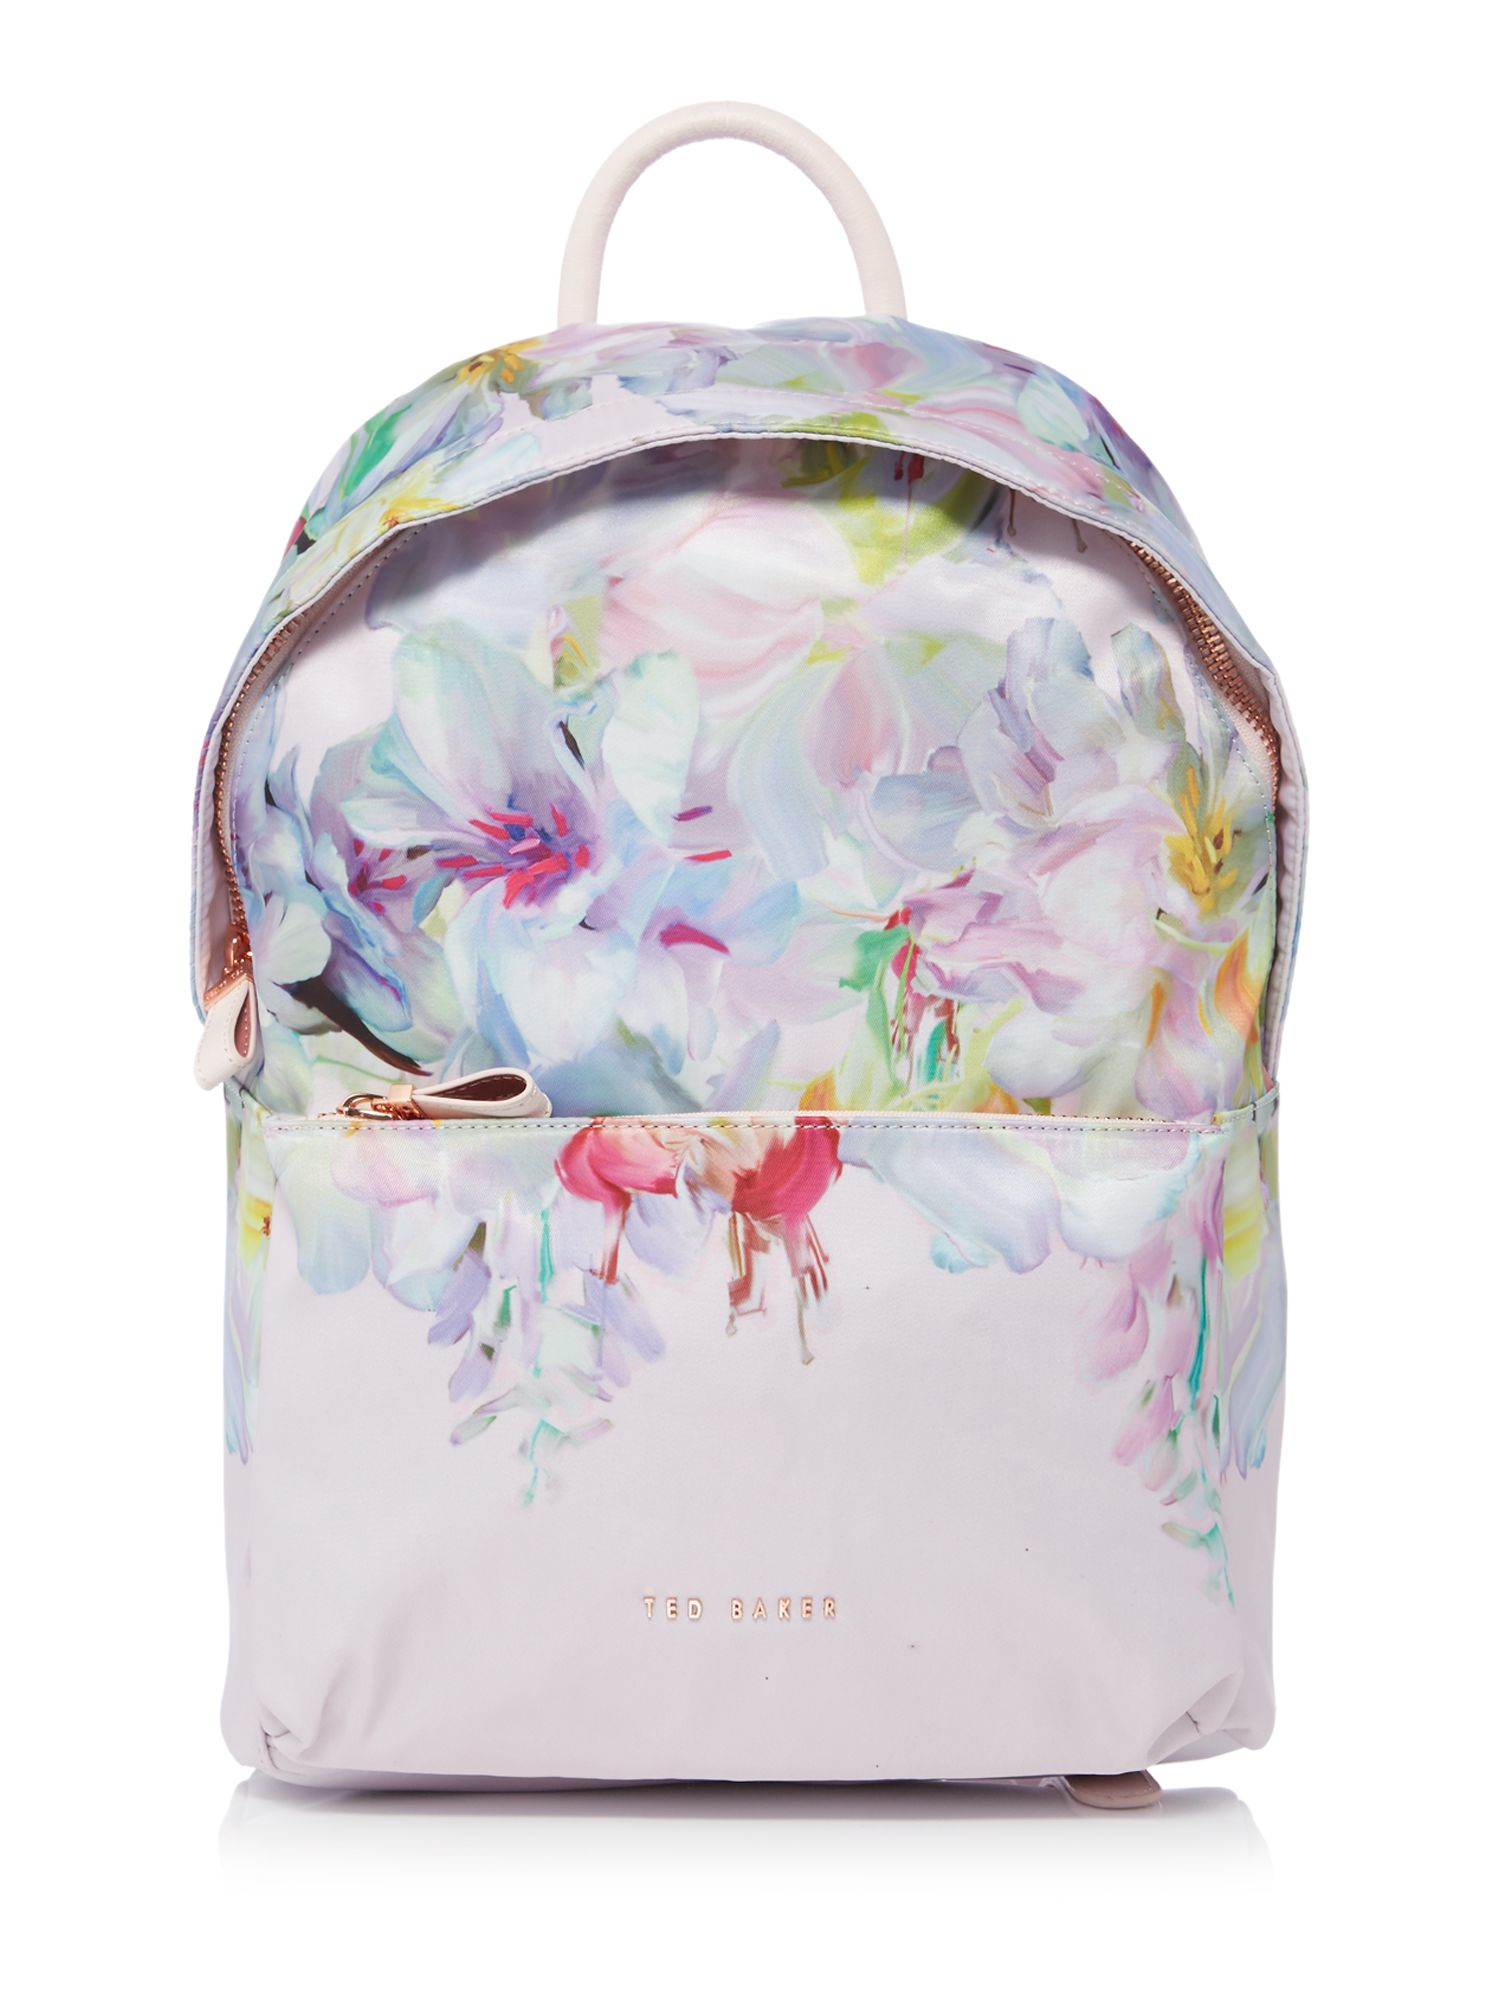 Ted Baker Freia Light Pink Floral Nylon Backpack In Pink